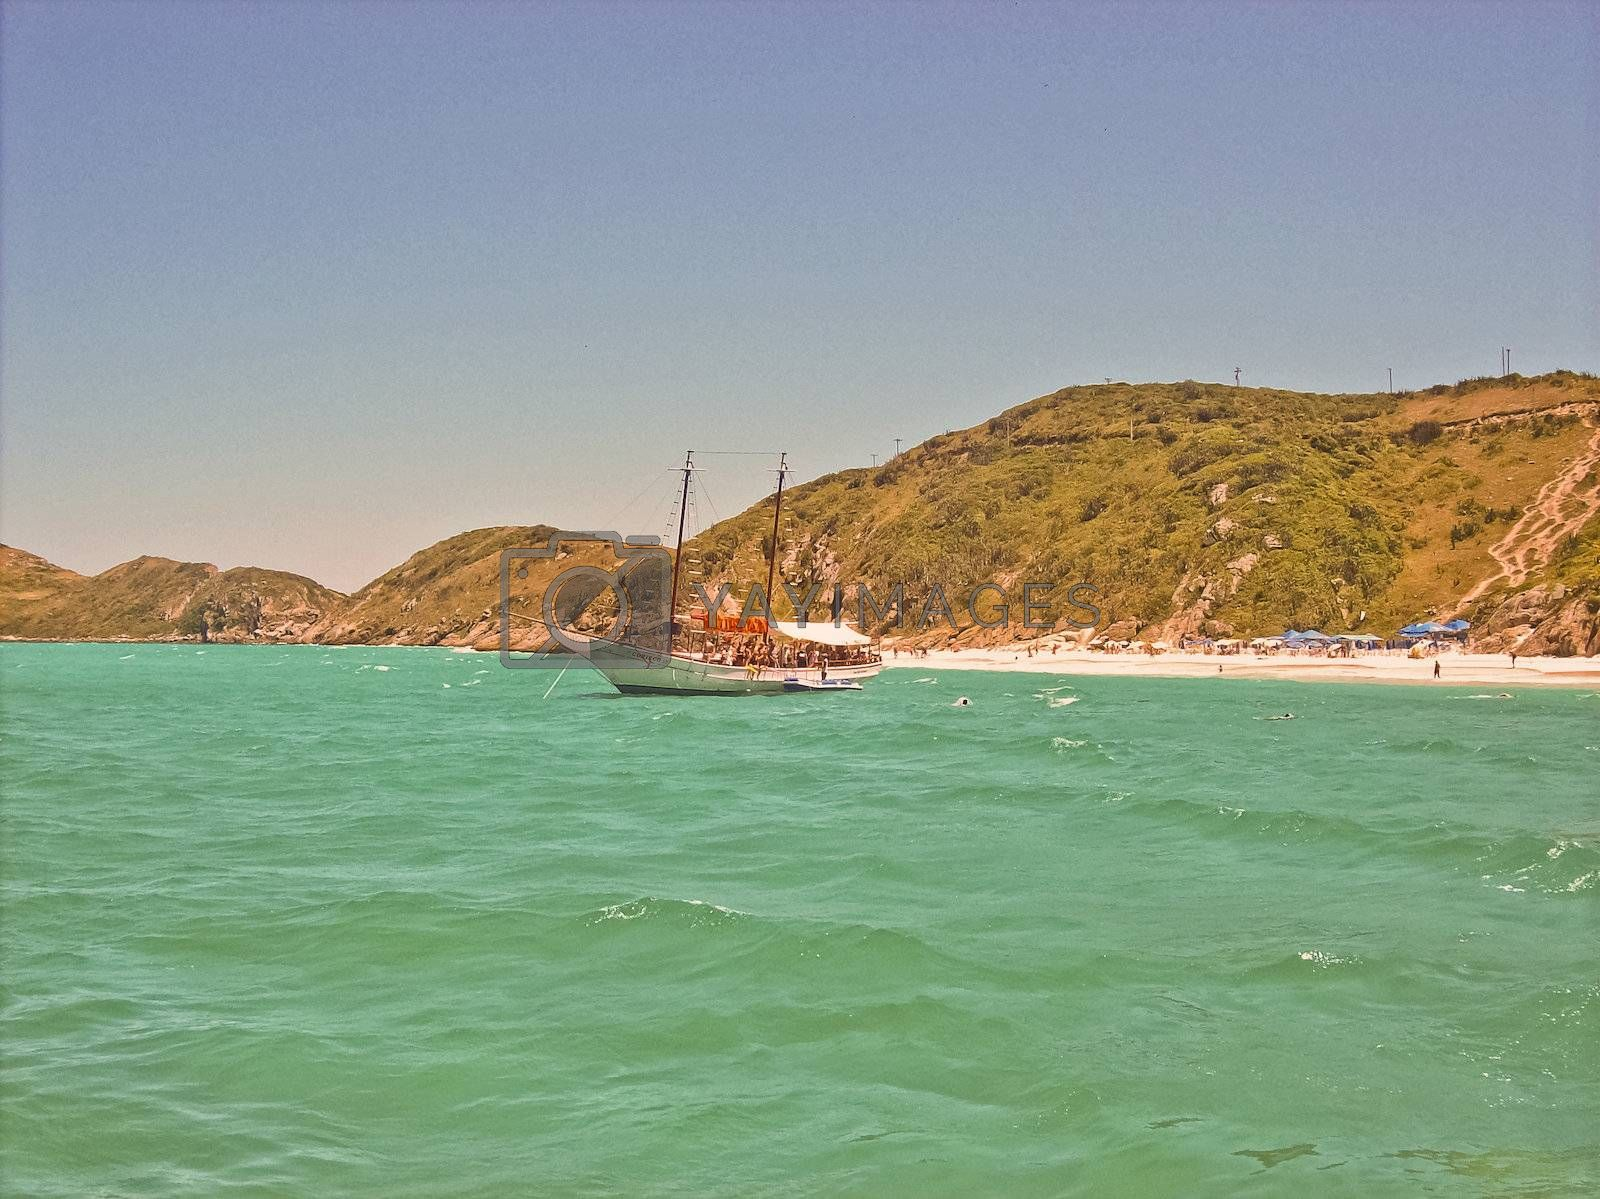 Small passenger boat in a beach of Buzios, Brasil, taken from another boat.